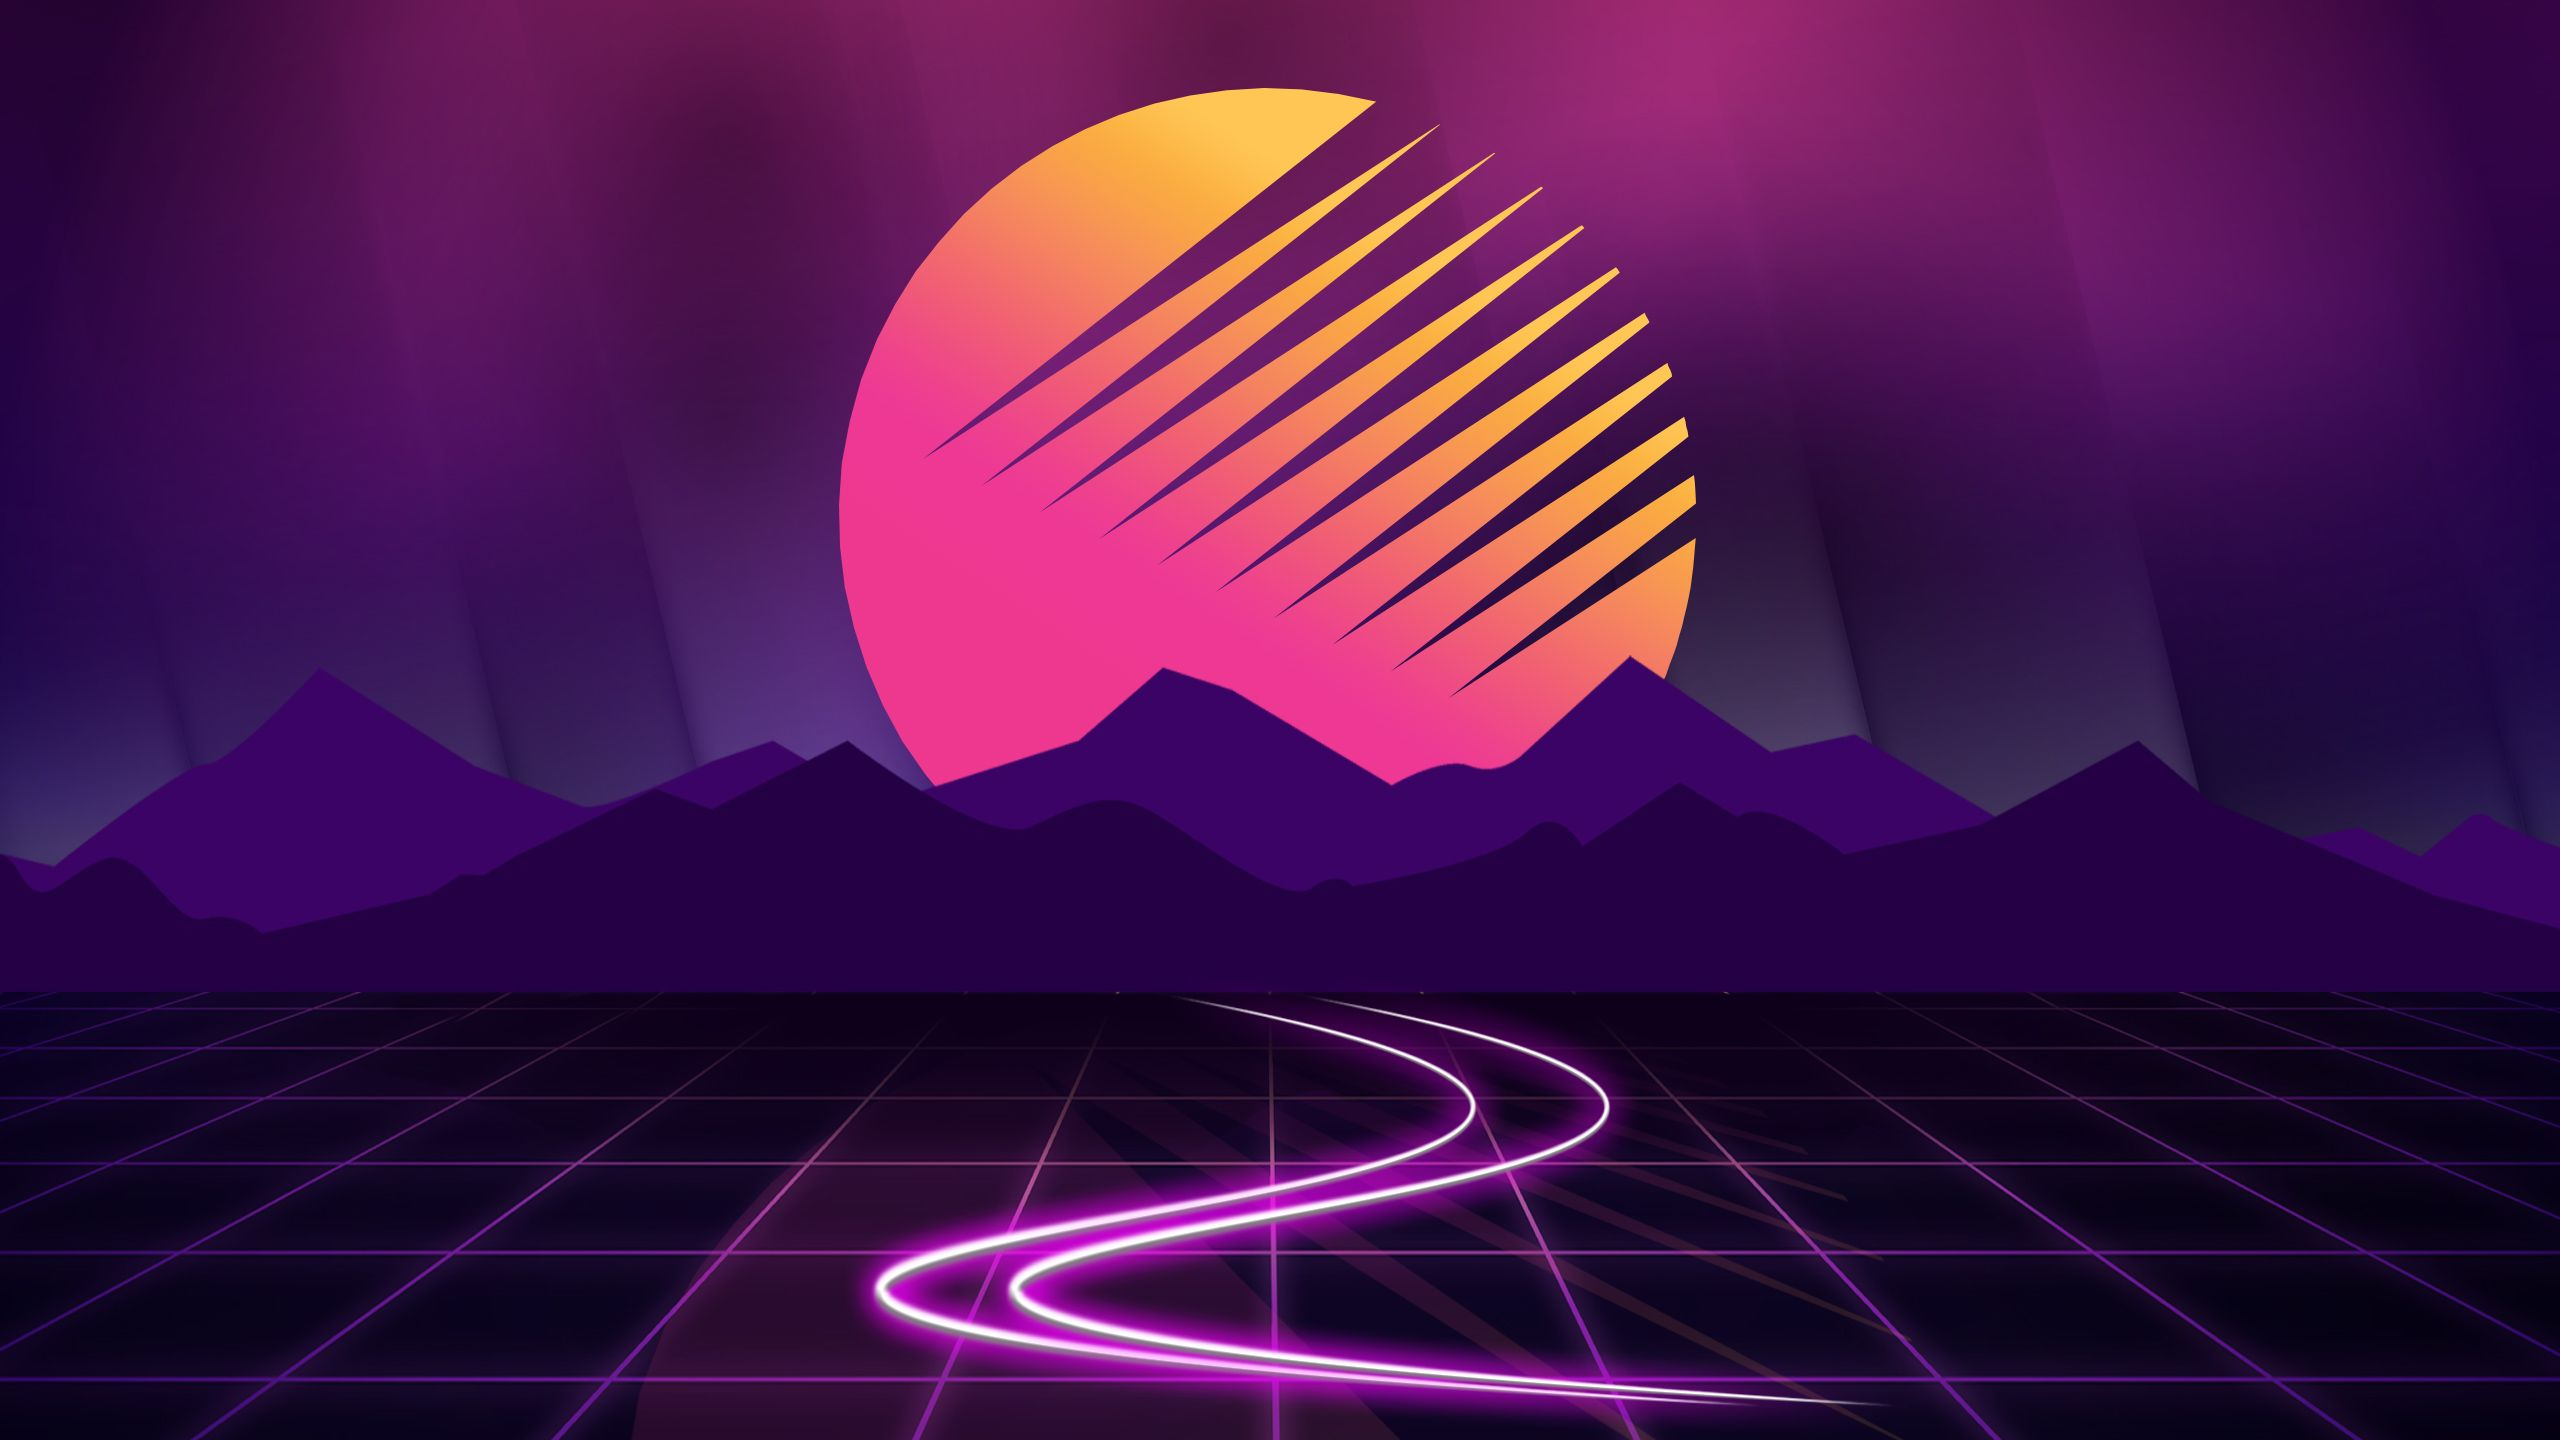 2560x1440 Outrun 1440P Resolution HD 4k Wallpapers, Image, Backgrounds, Photos and Pictures